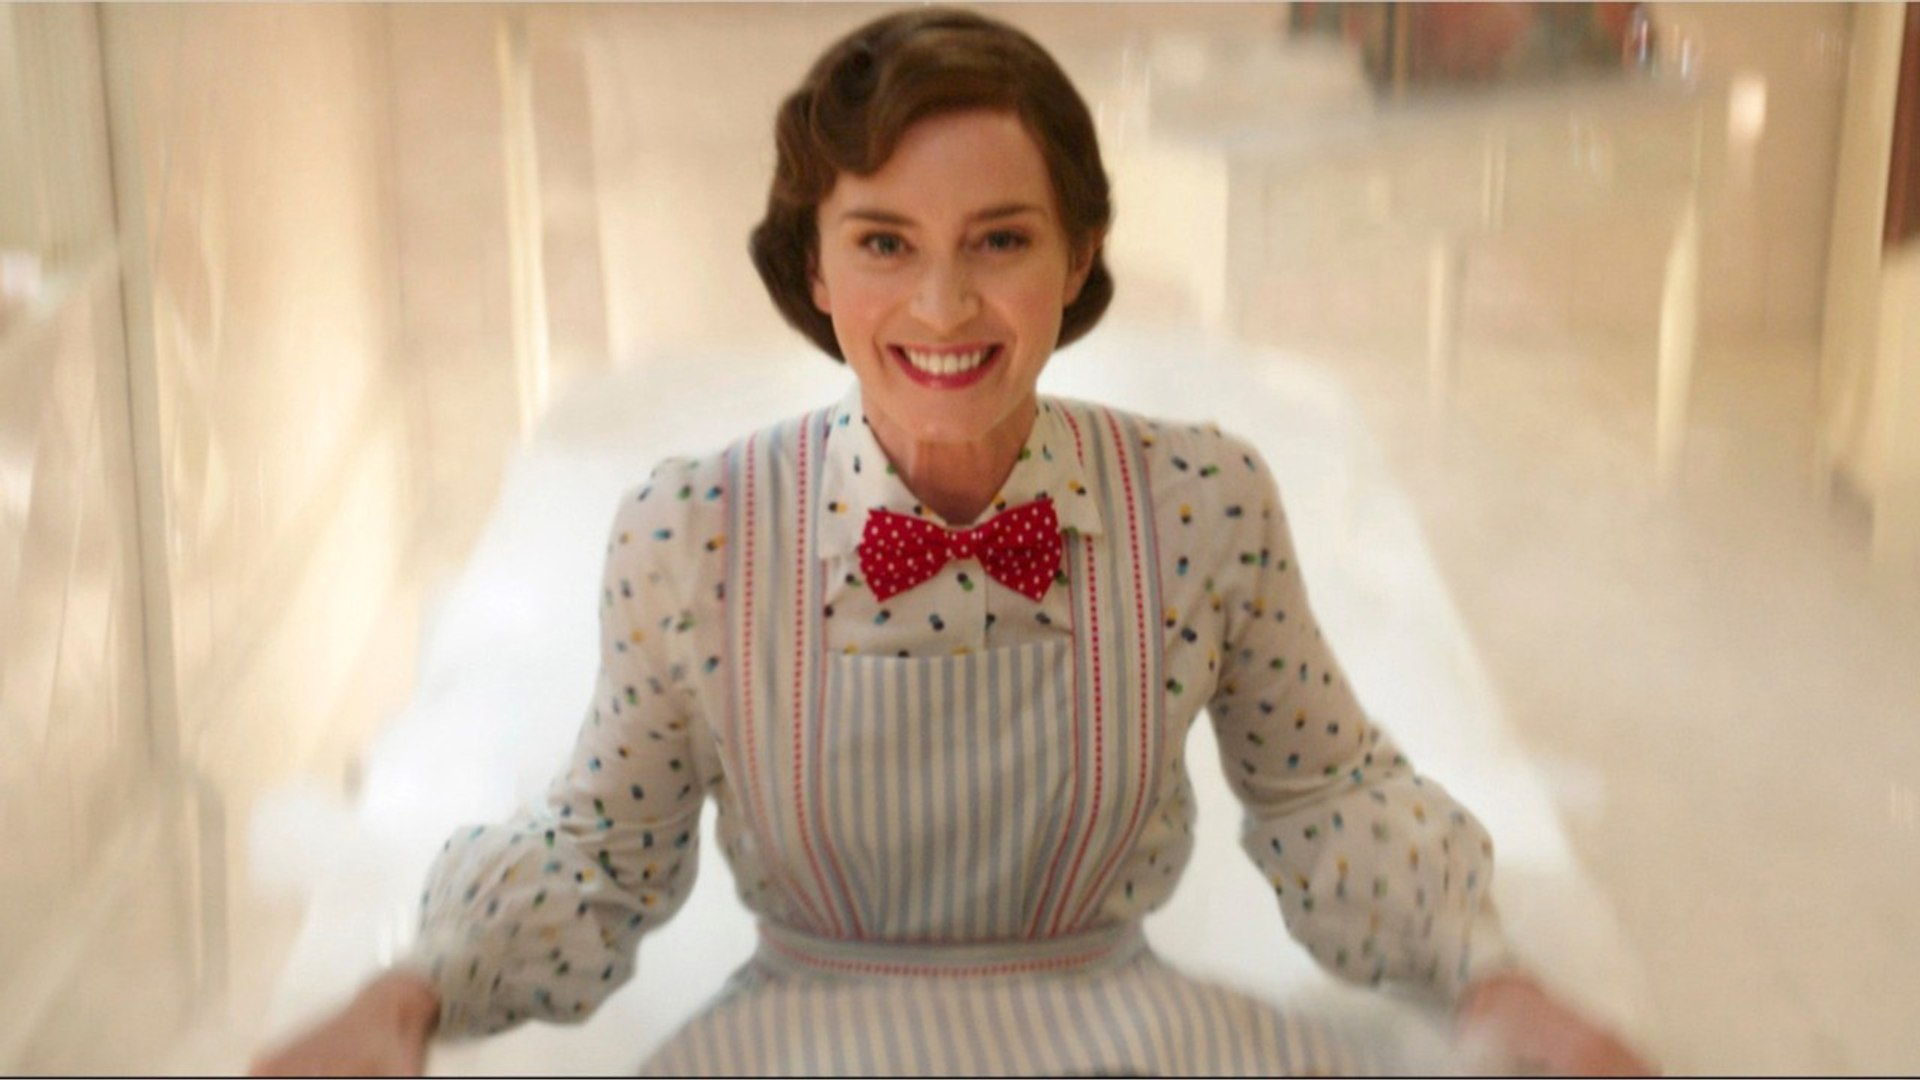 Can We Expect a Post Credits Scene in Mary Poppins Returns?